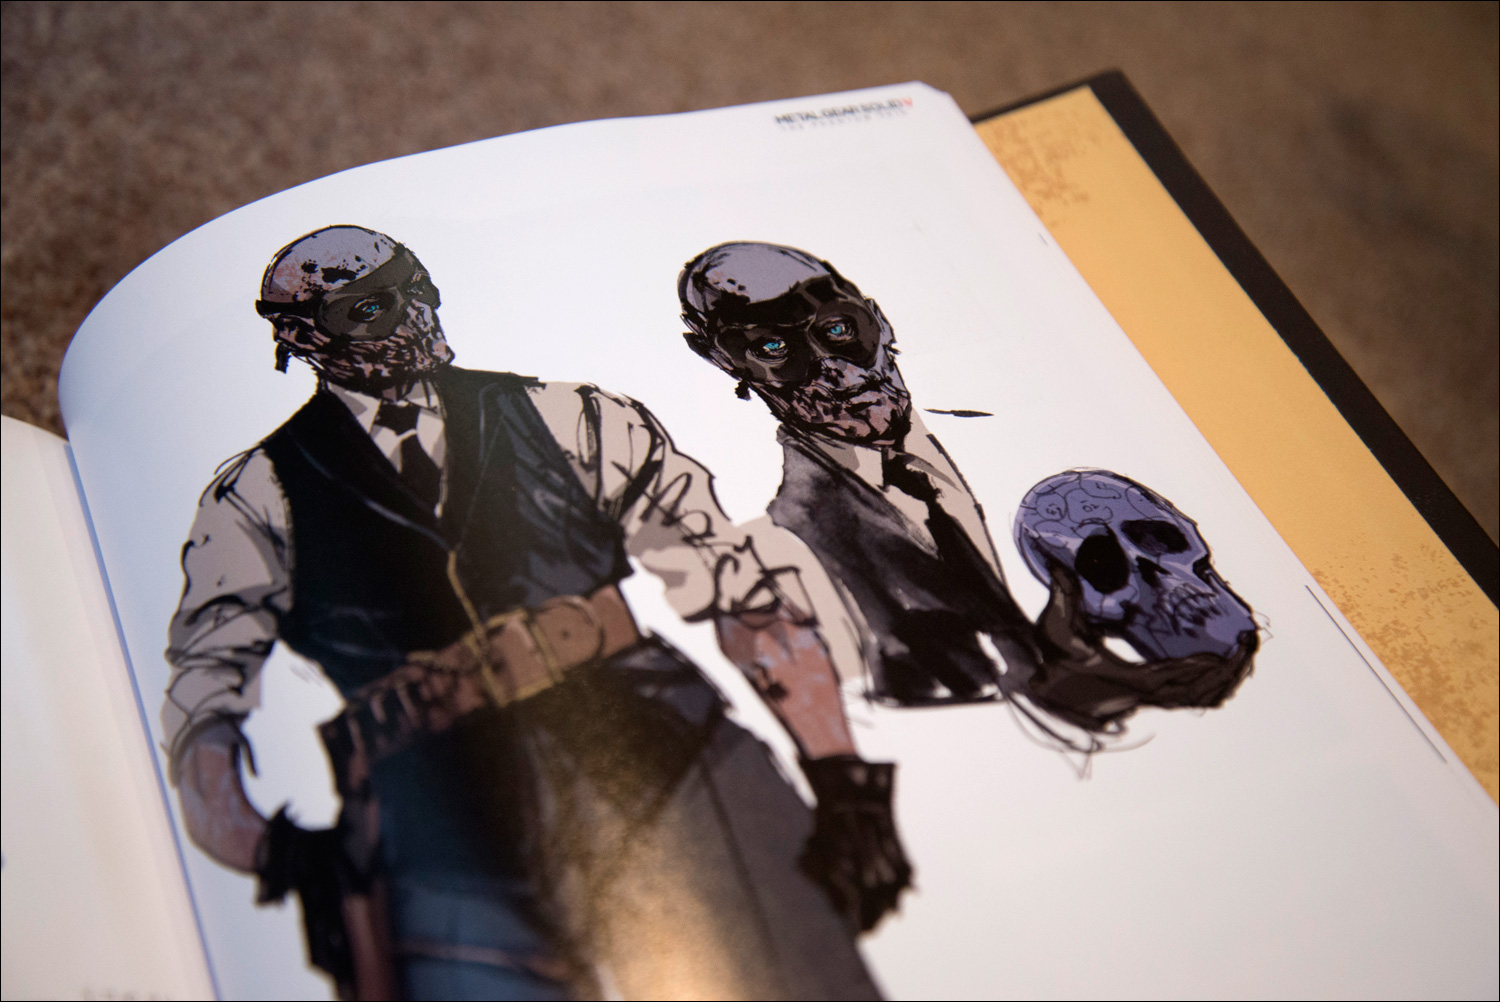 Metal-Gear-Solid-V-The-Phantom-Pain-Collector's-Edition-Skull-Face-Art